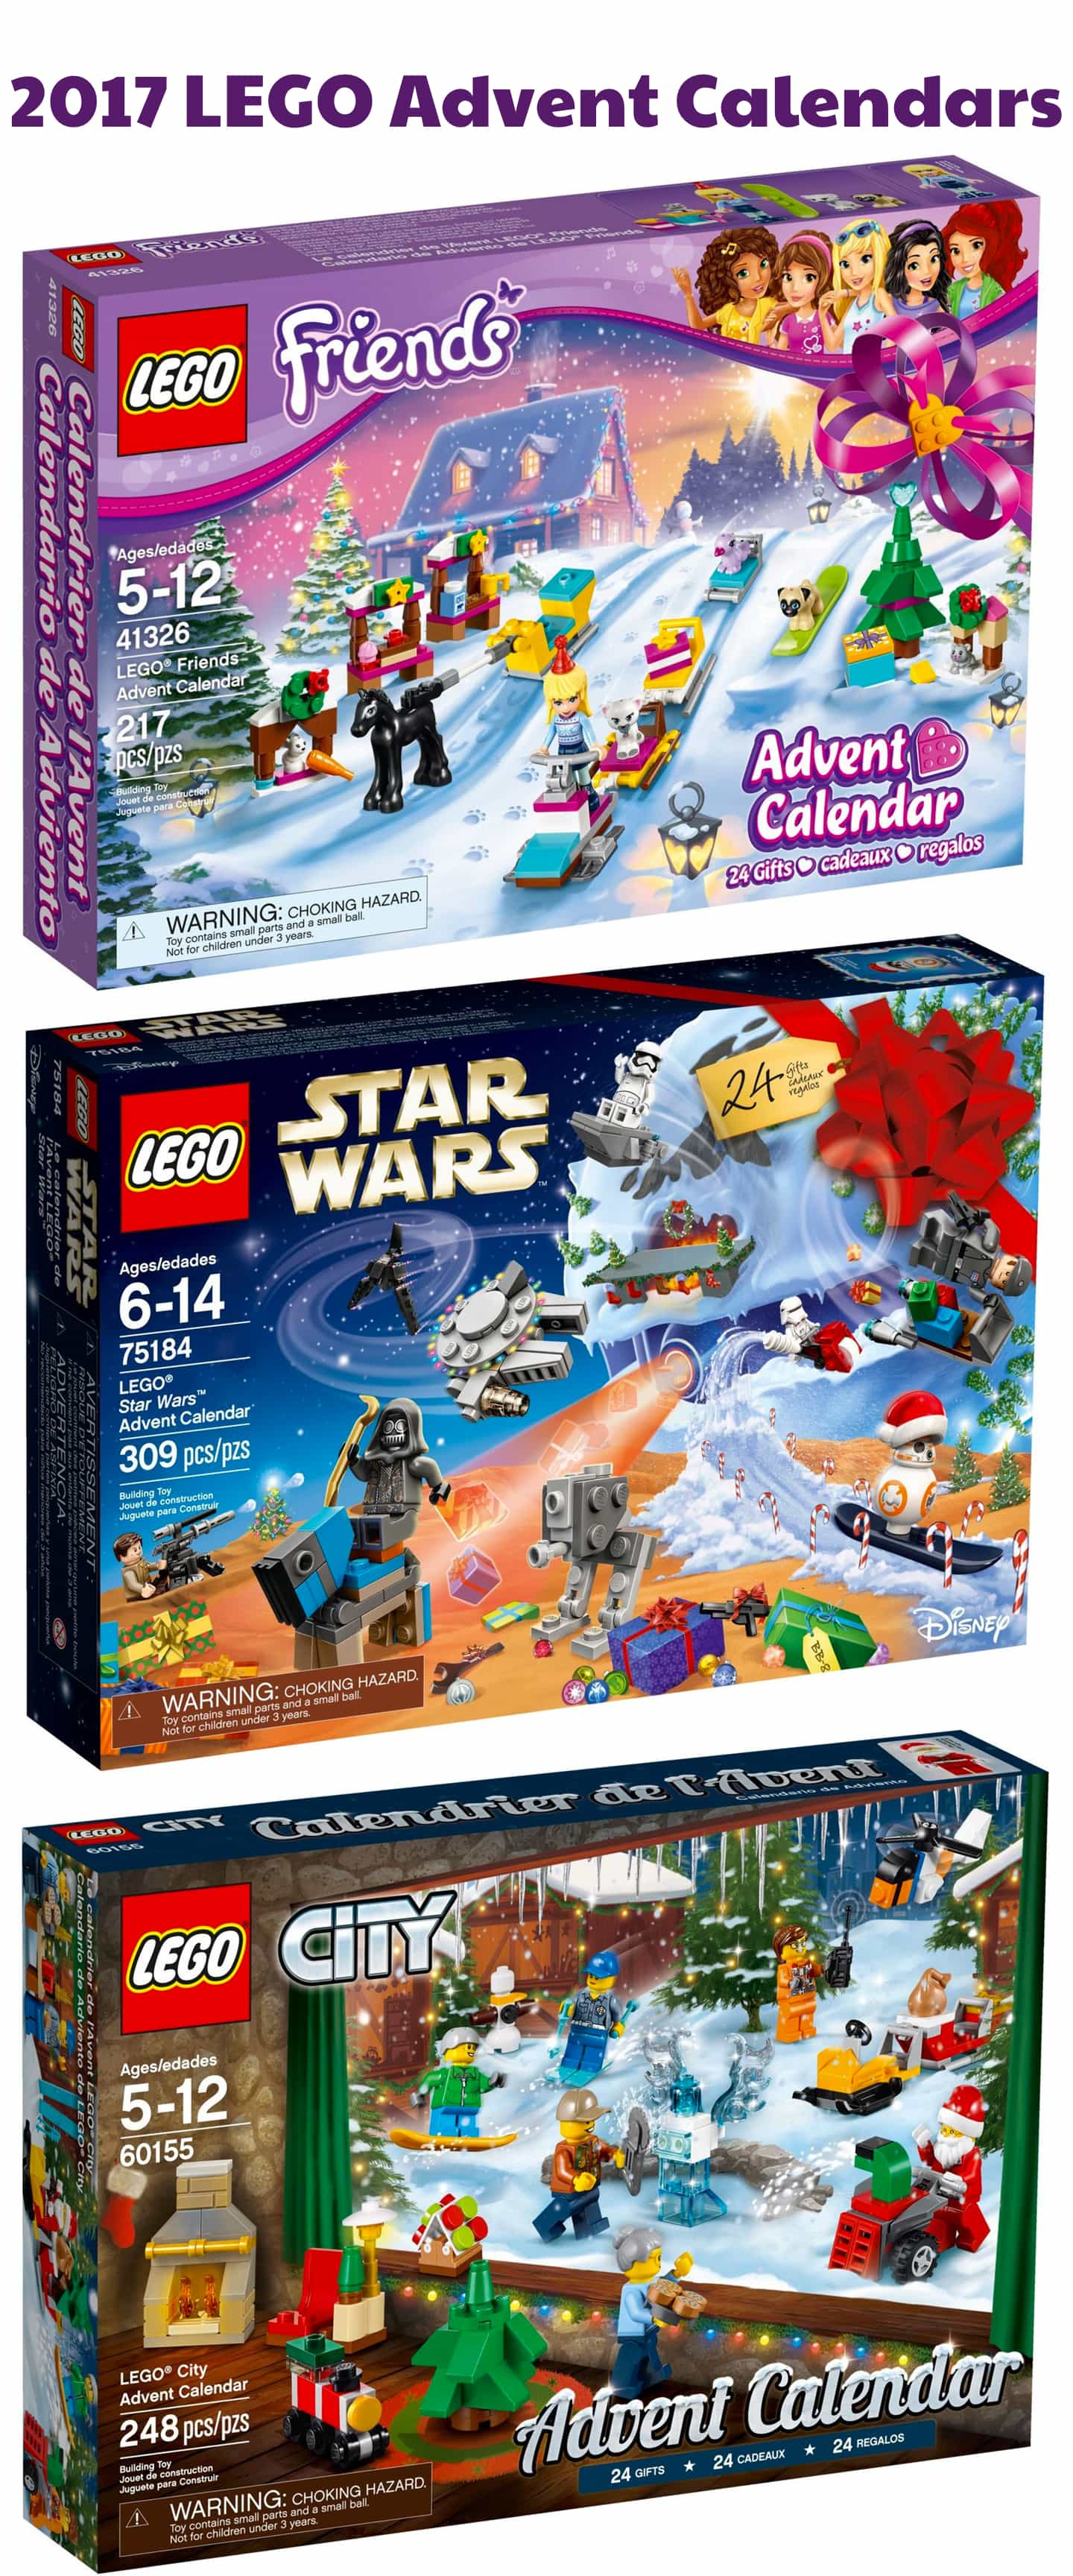 Lego 2017 advent calendars coming soon star wars friends city all three lego advent calendars for 2017 are coming soon lego advent calendars are undeniably the hottest advent calendars for all ages all over the globe voltagebd Choice Image